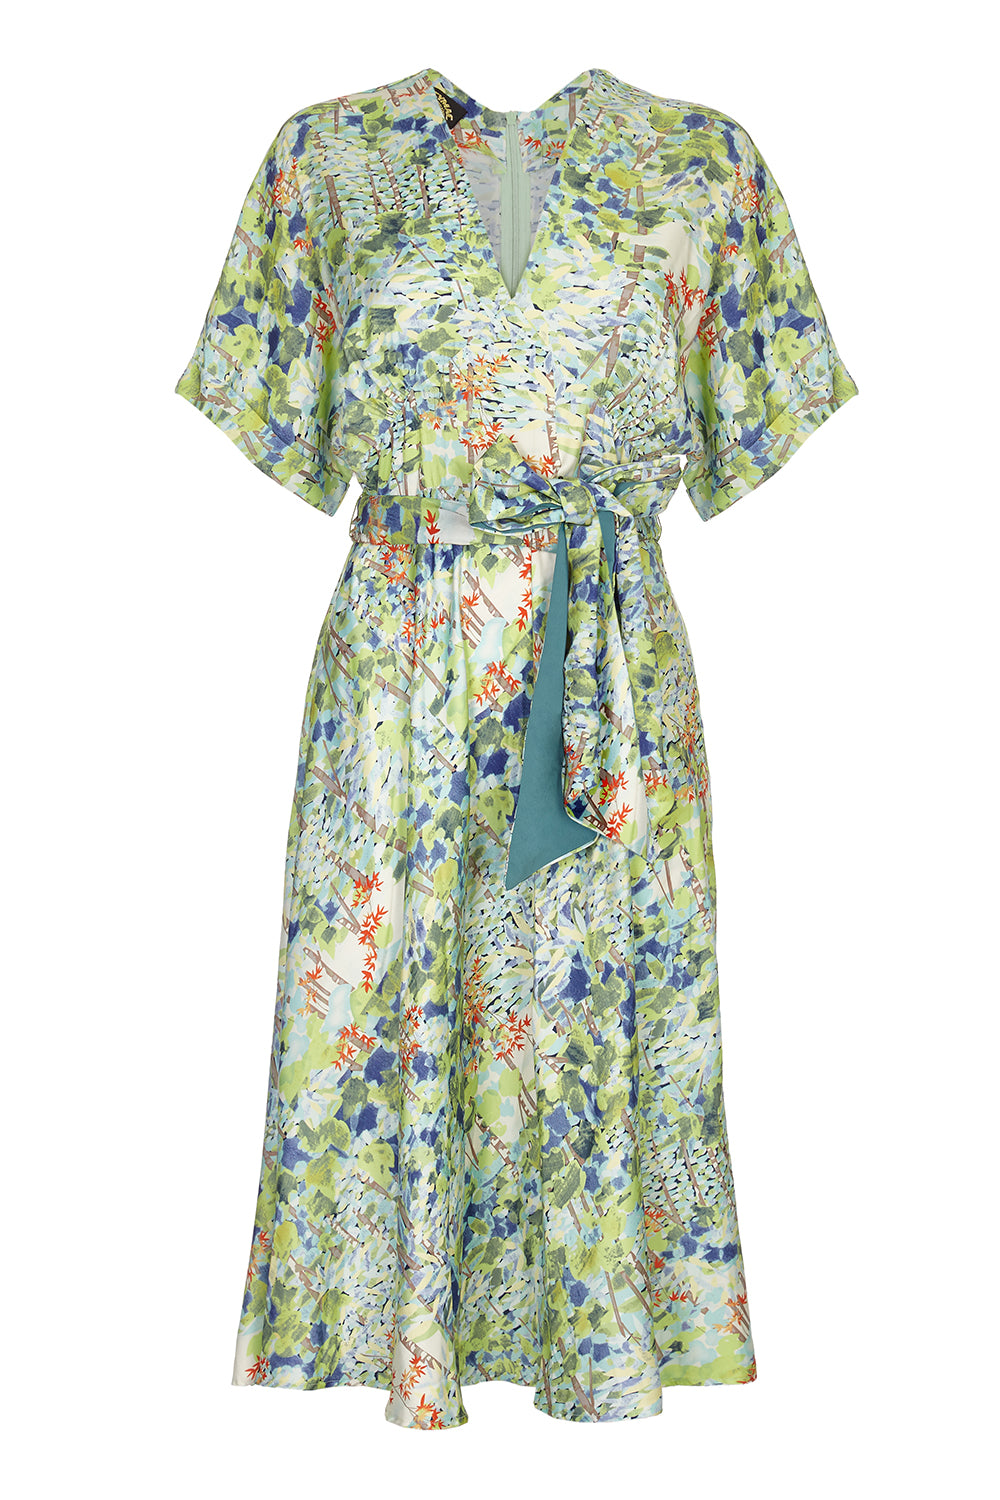 Nancy Mac Sophia dress in floral Painter's Garden print crepe - mannequin front